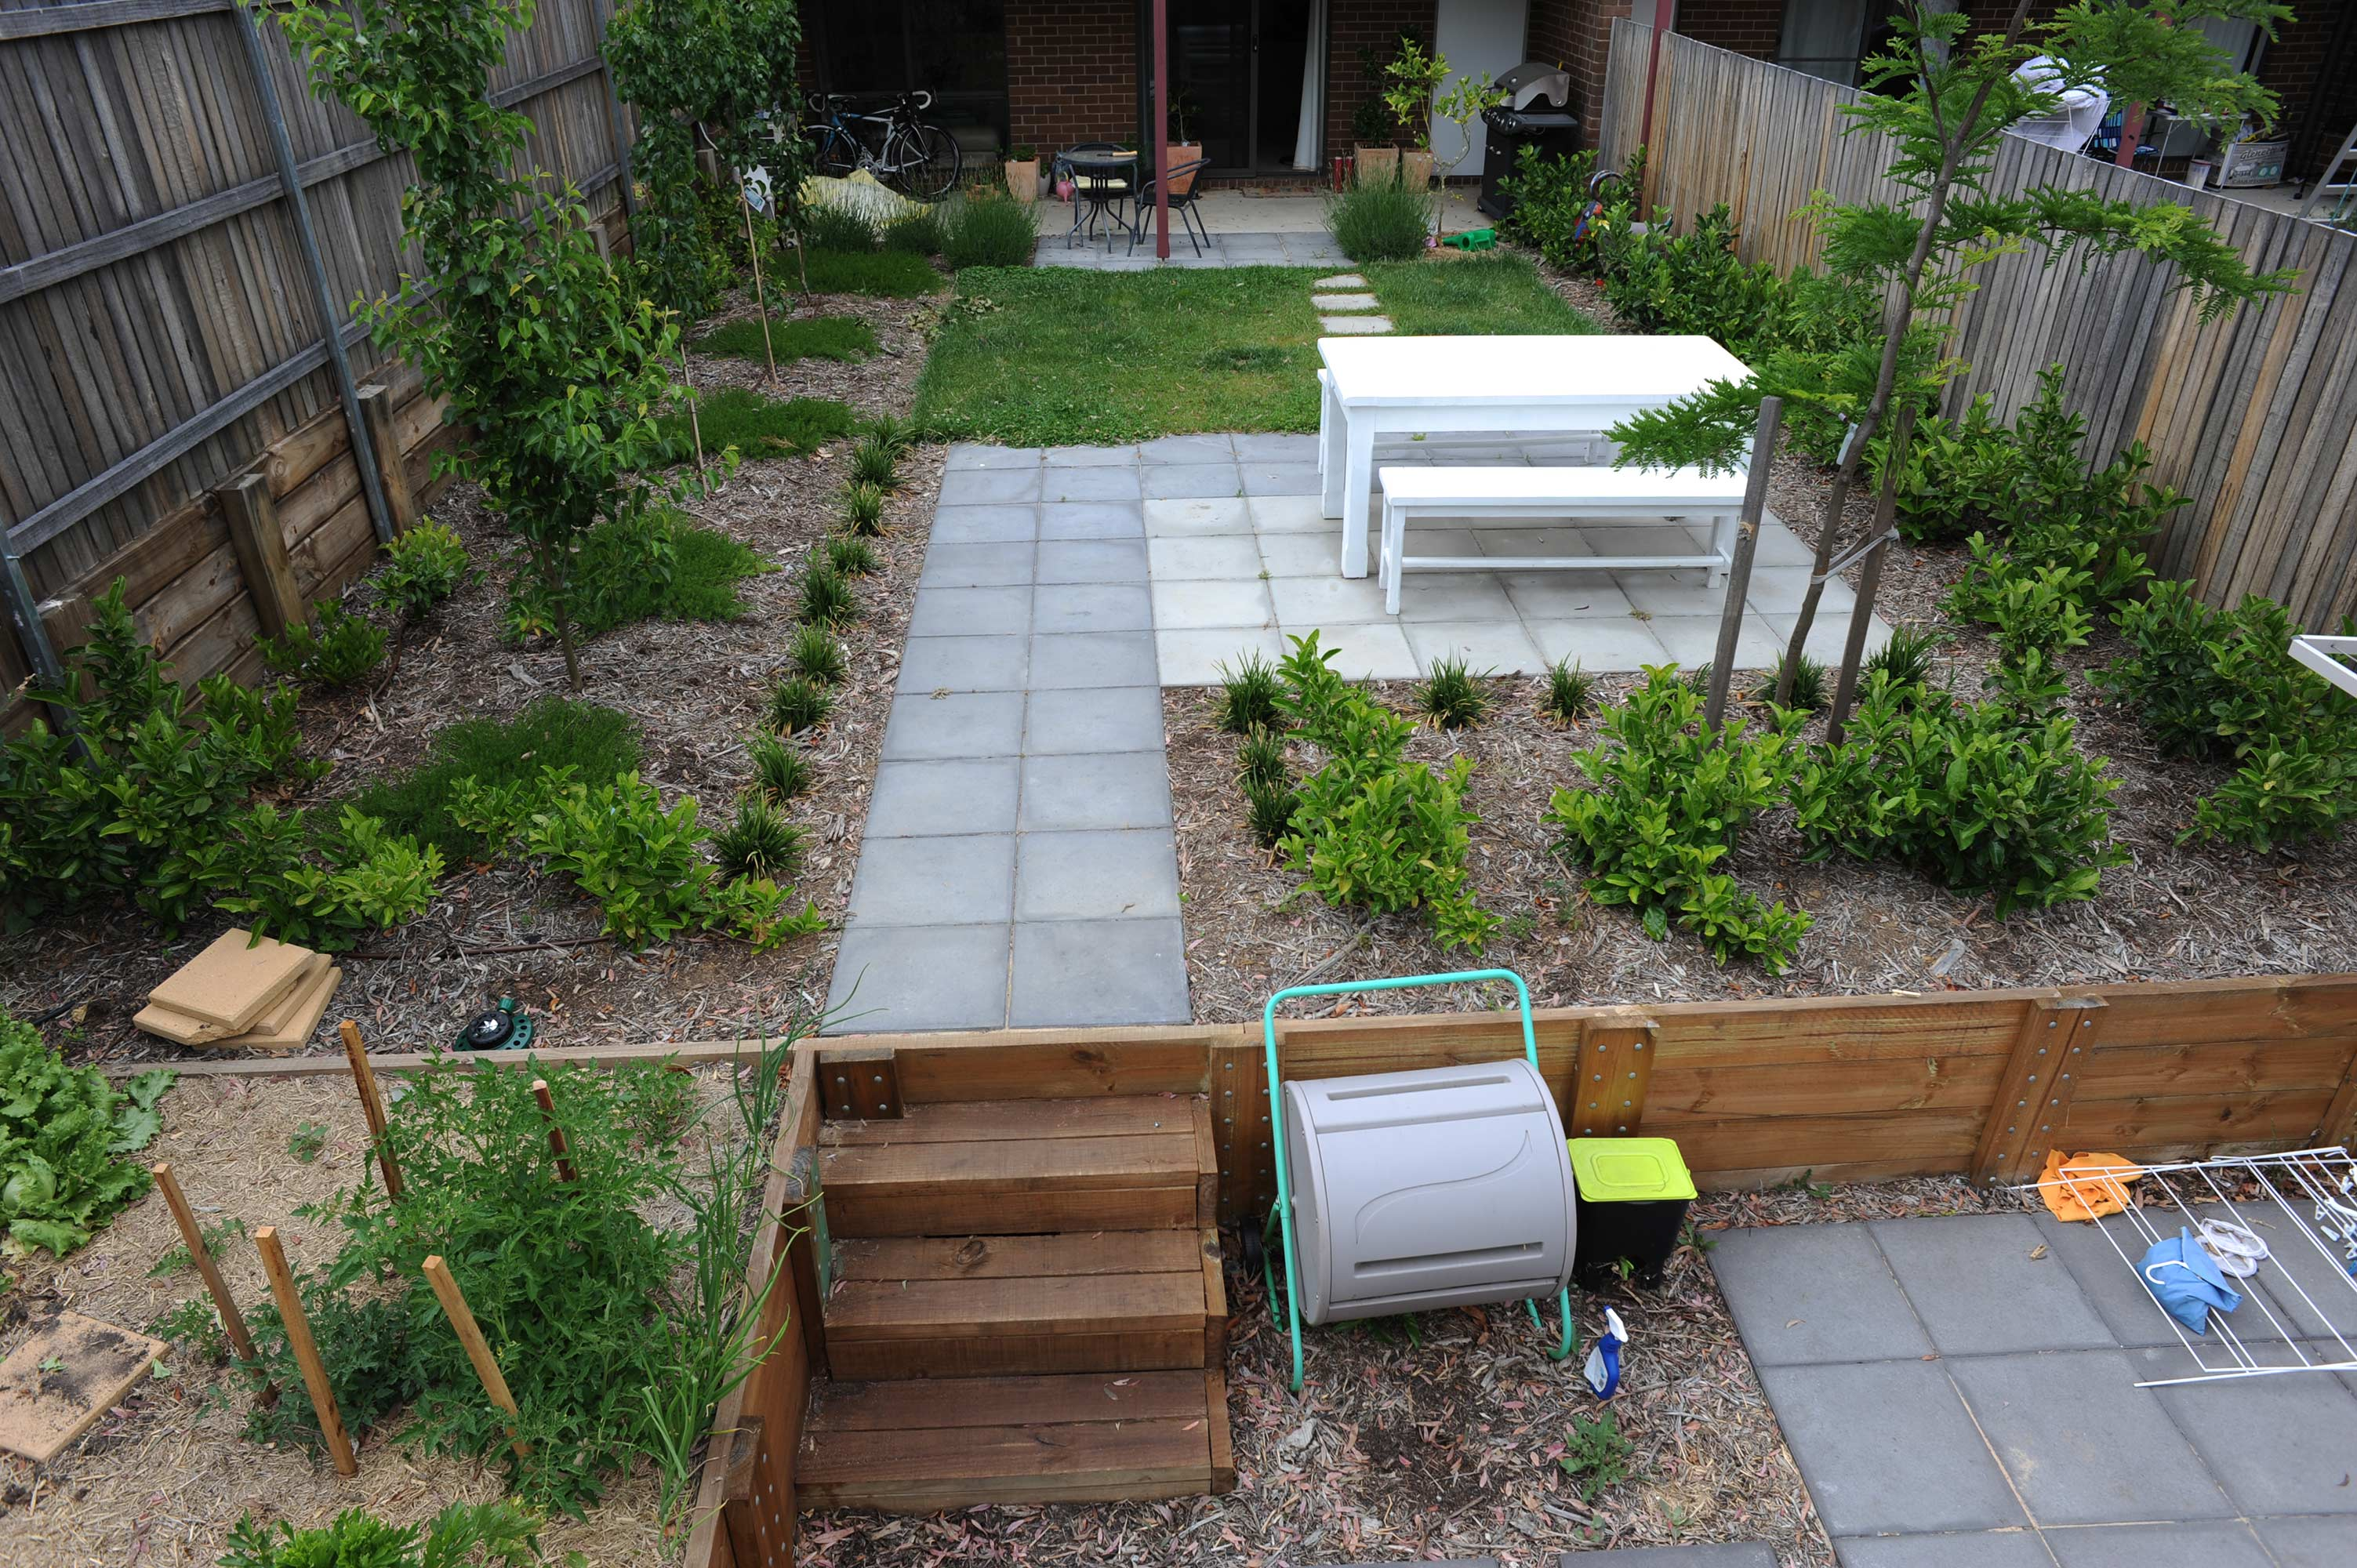 Tay Street, ACT. Paving, Turfing, Gardening and Retaining Wall 8